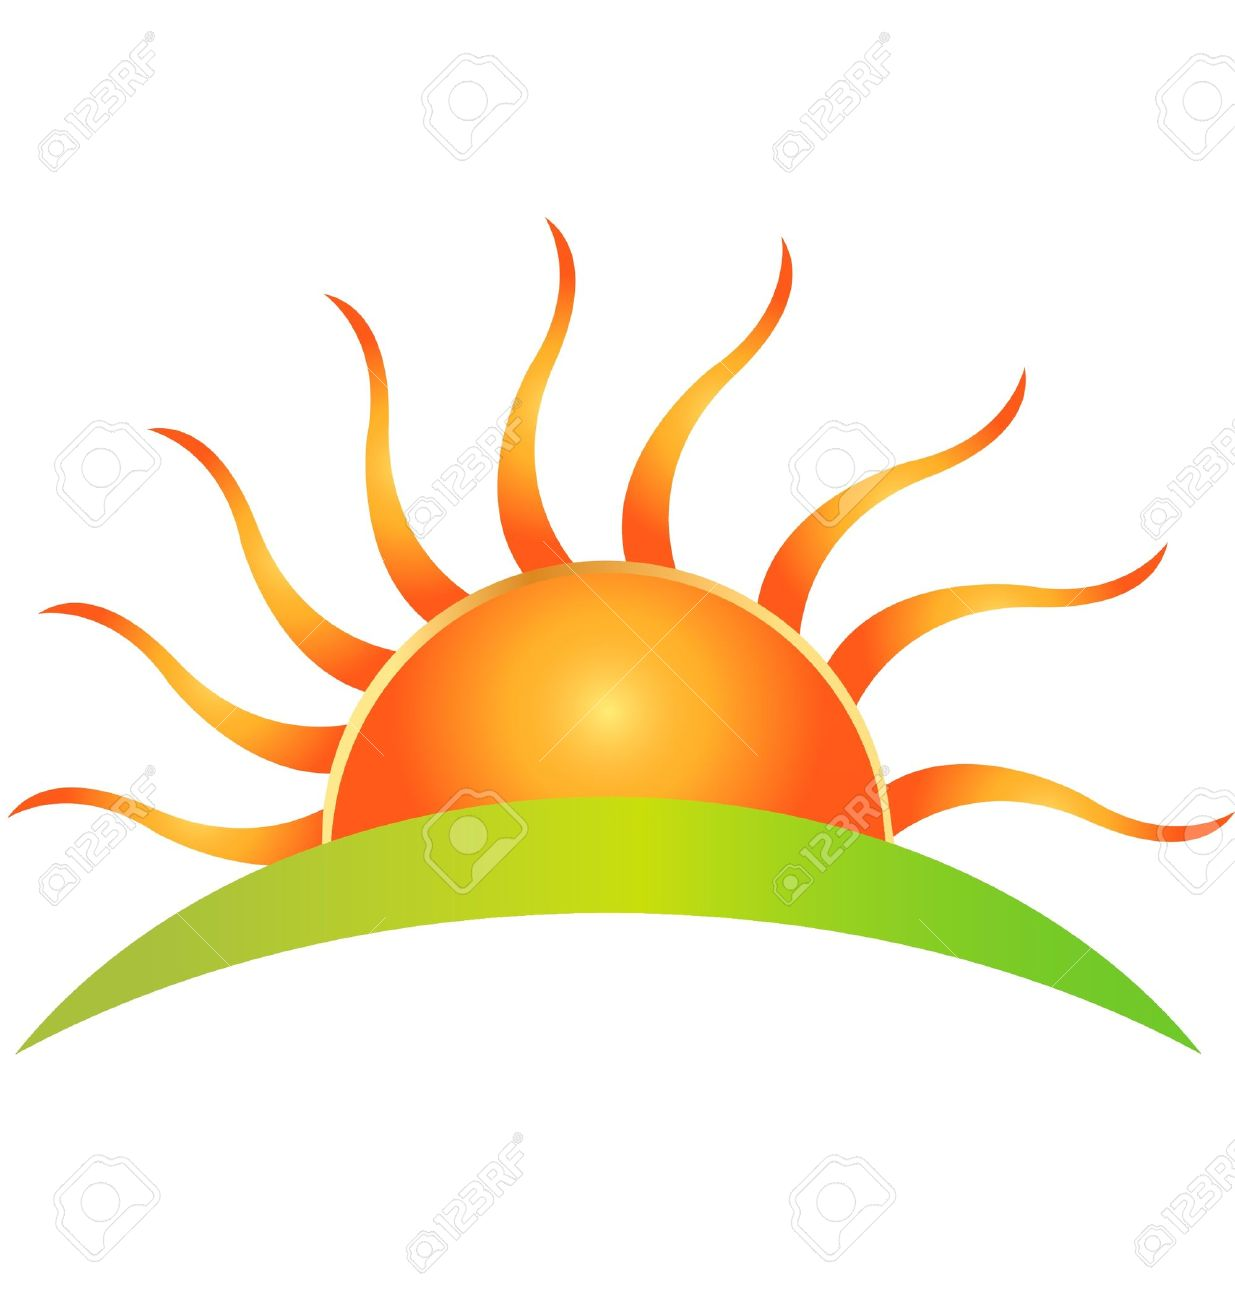 25 665 sun logo cliparts stock vector and royalty free sun logo rh 123rf com sun logistics inc sun logistics tracking